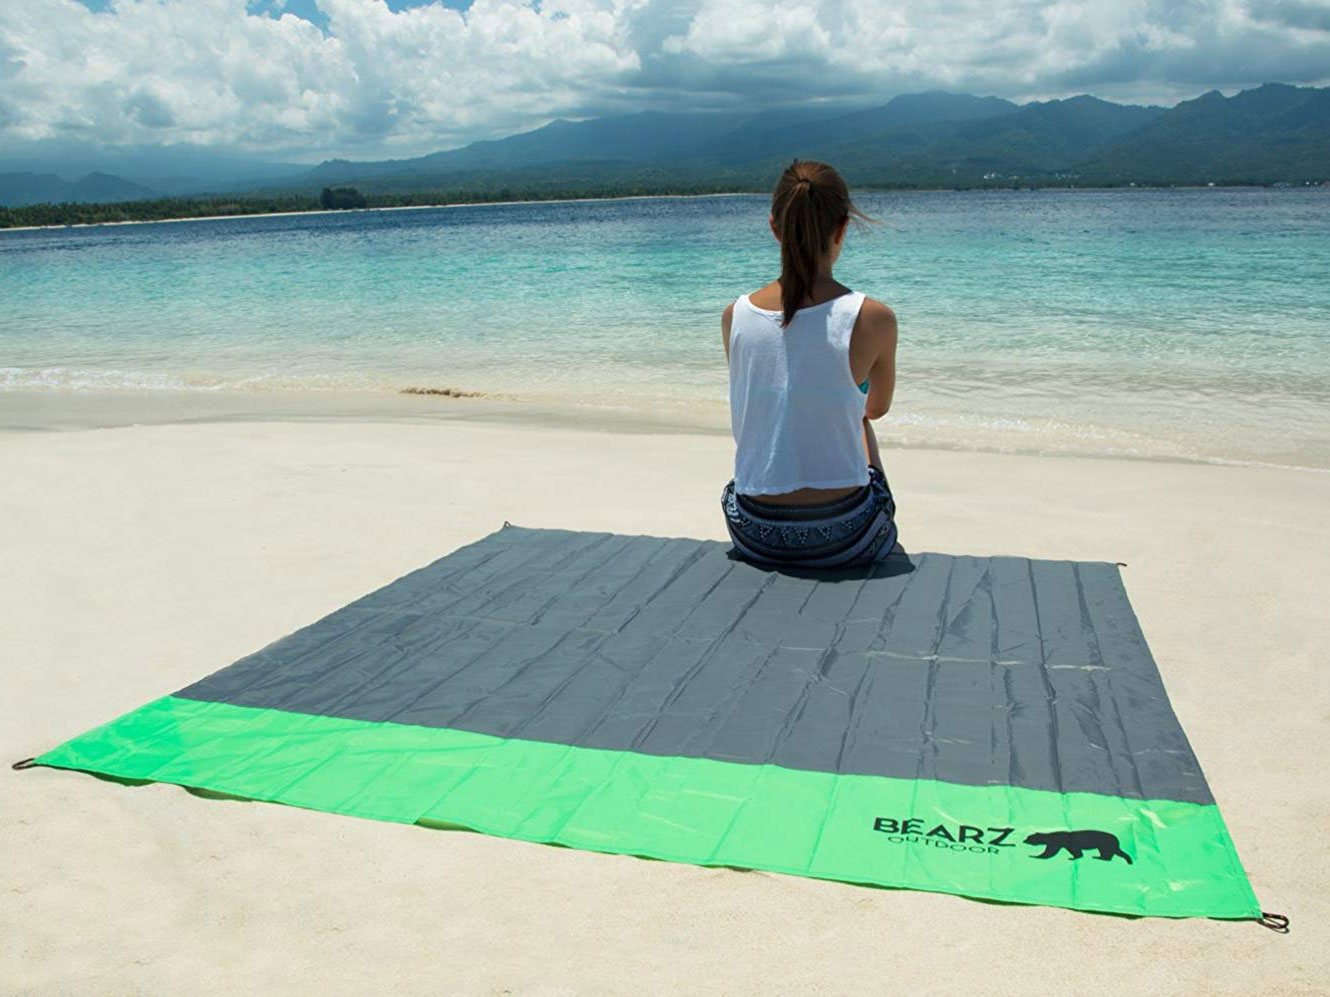 Bearz Waterproof Beach Blanket